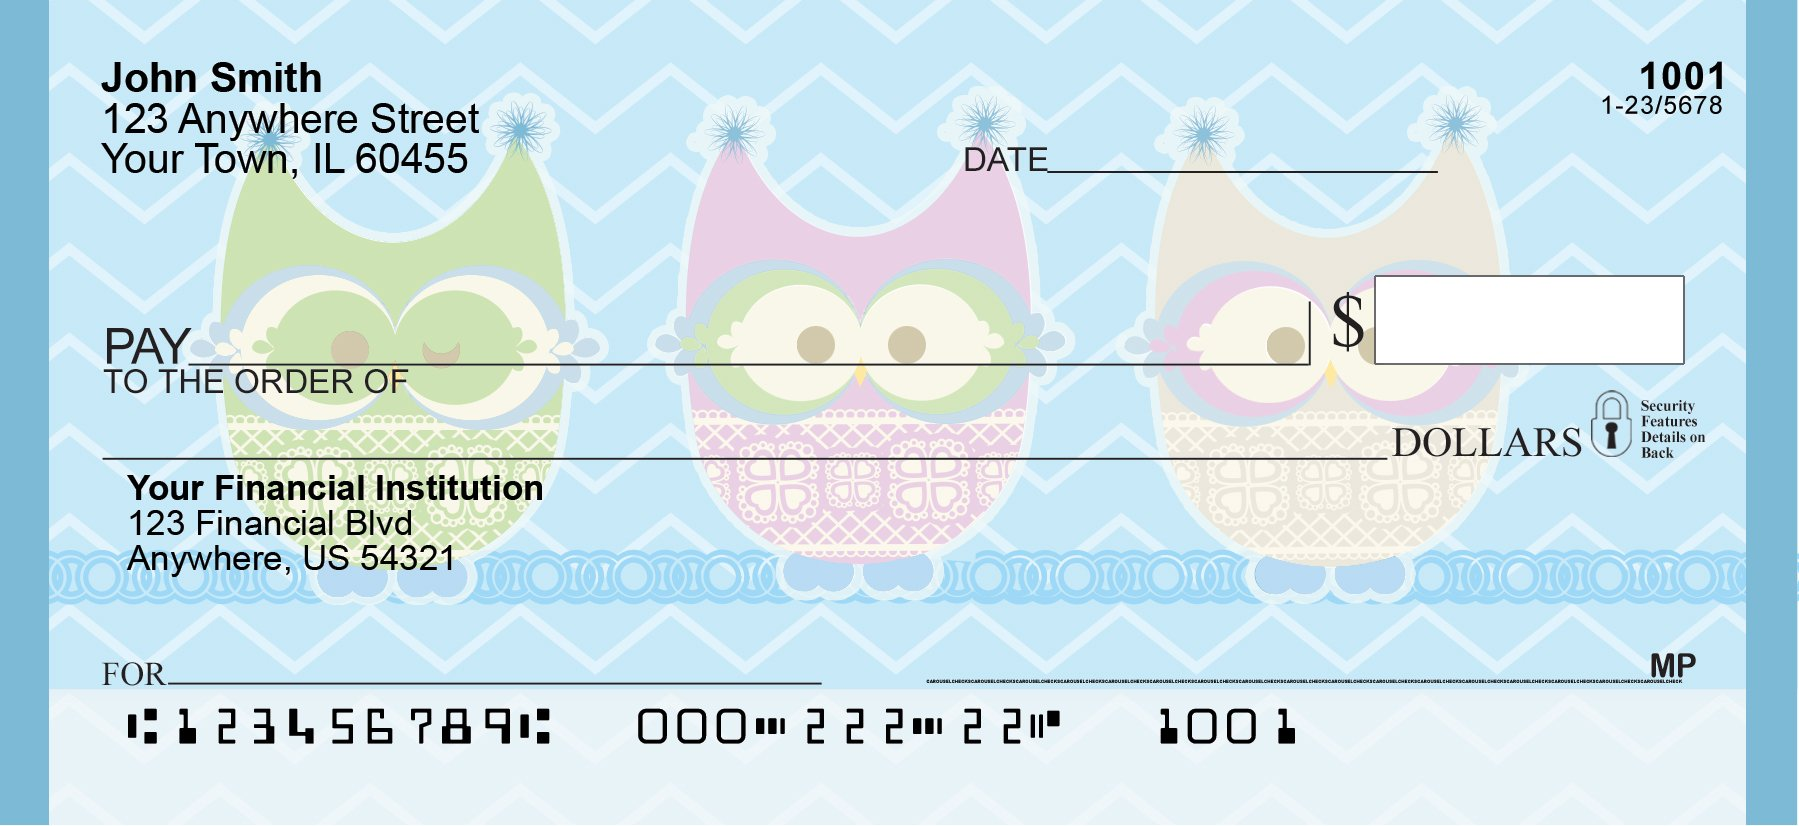 Give a Hoot Personal Checks (1 Box Singles) by Carousel Checks Inc. (Image #1)